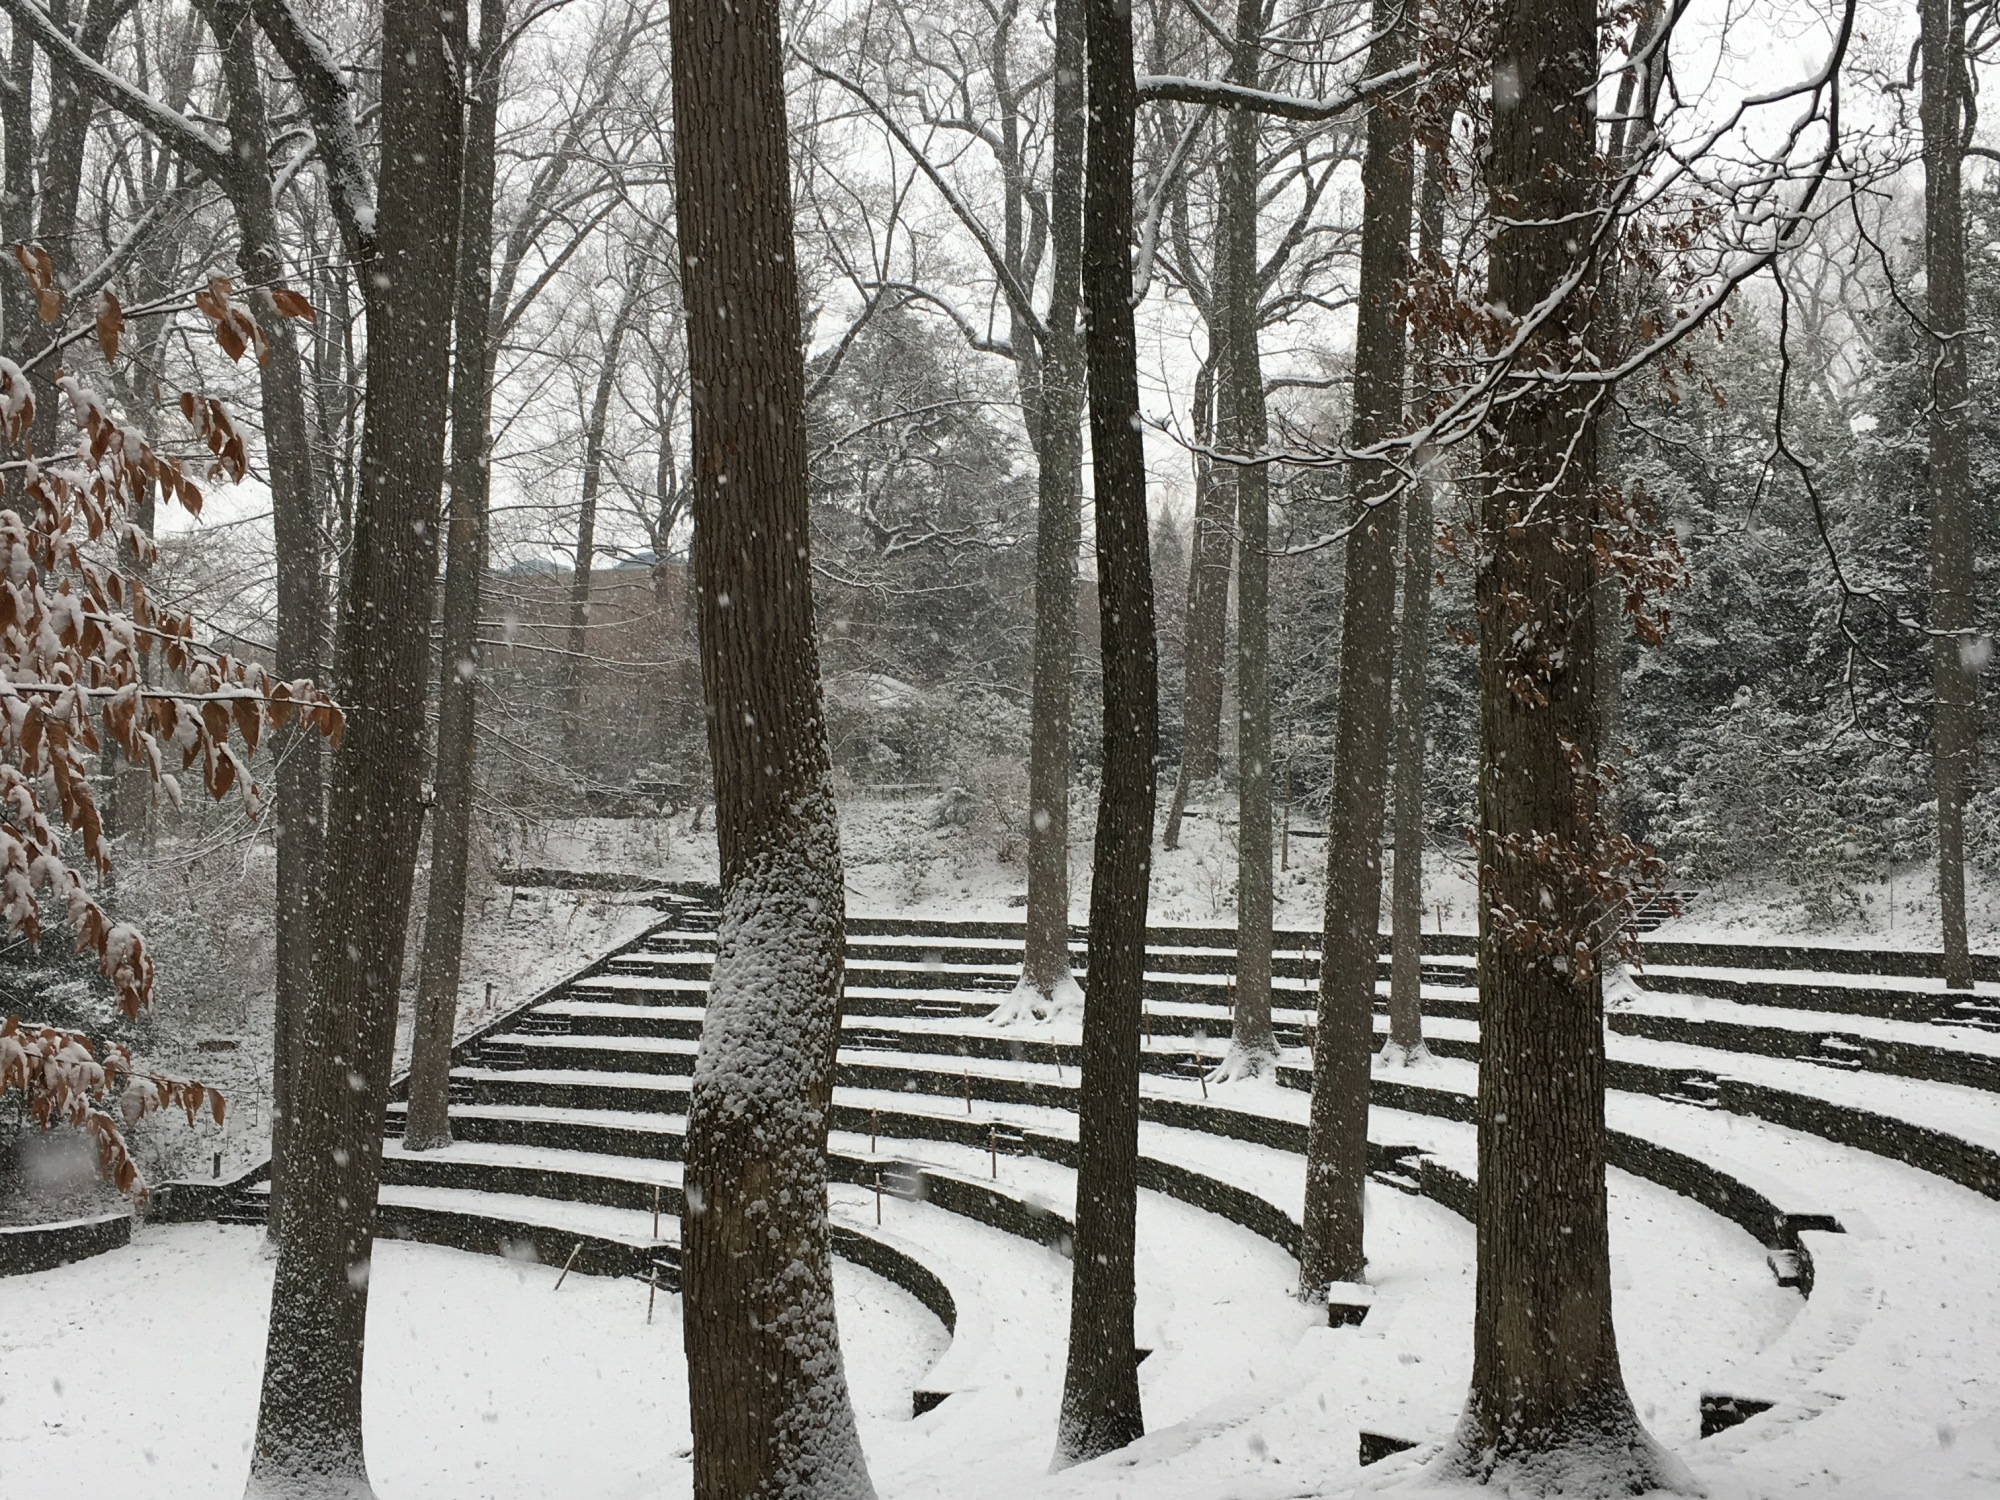 Snow in the amphitheater